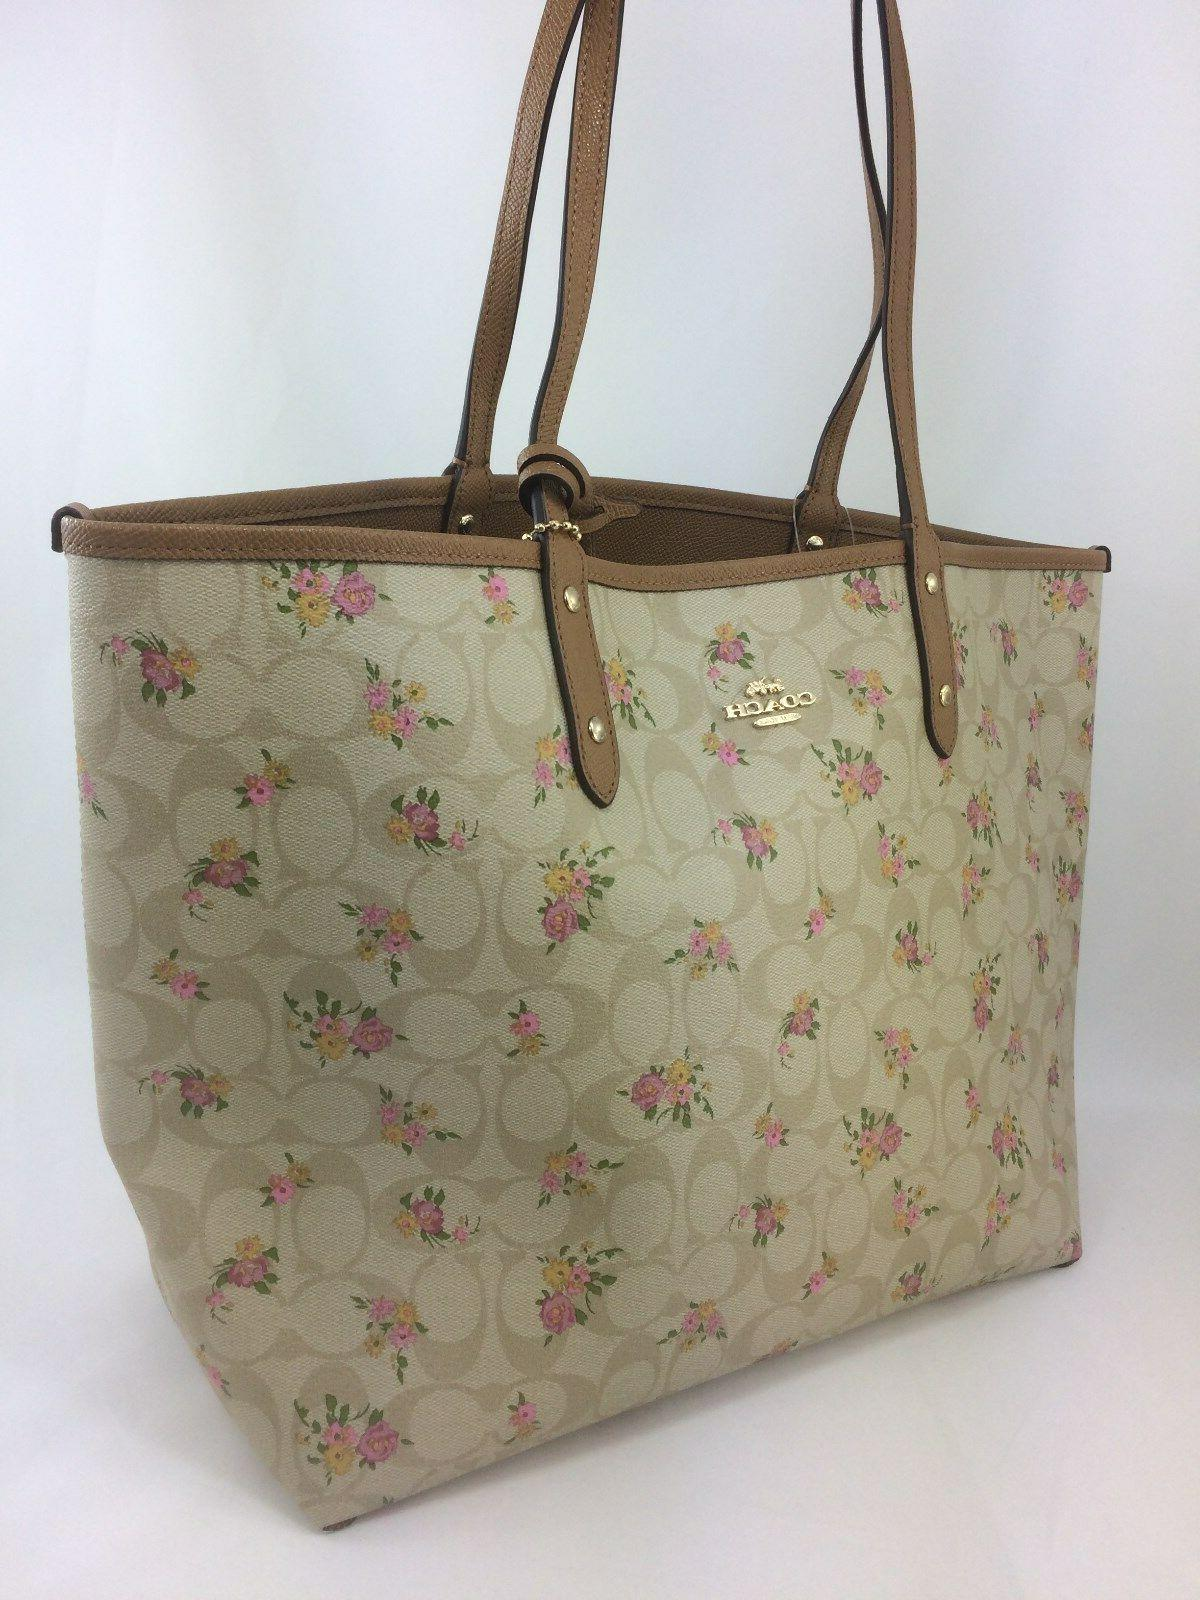 New Authentic Coach F31776 Reversible City Tote With Daisy Rose Floral Print